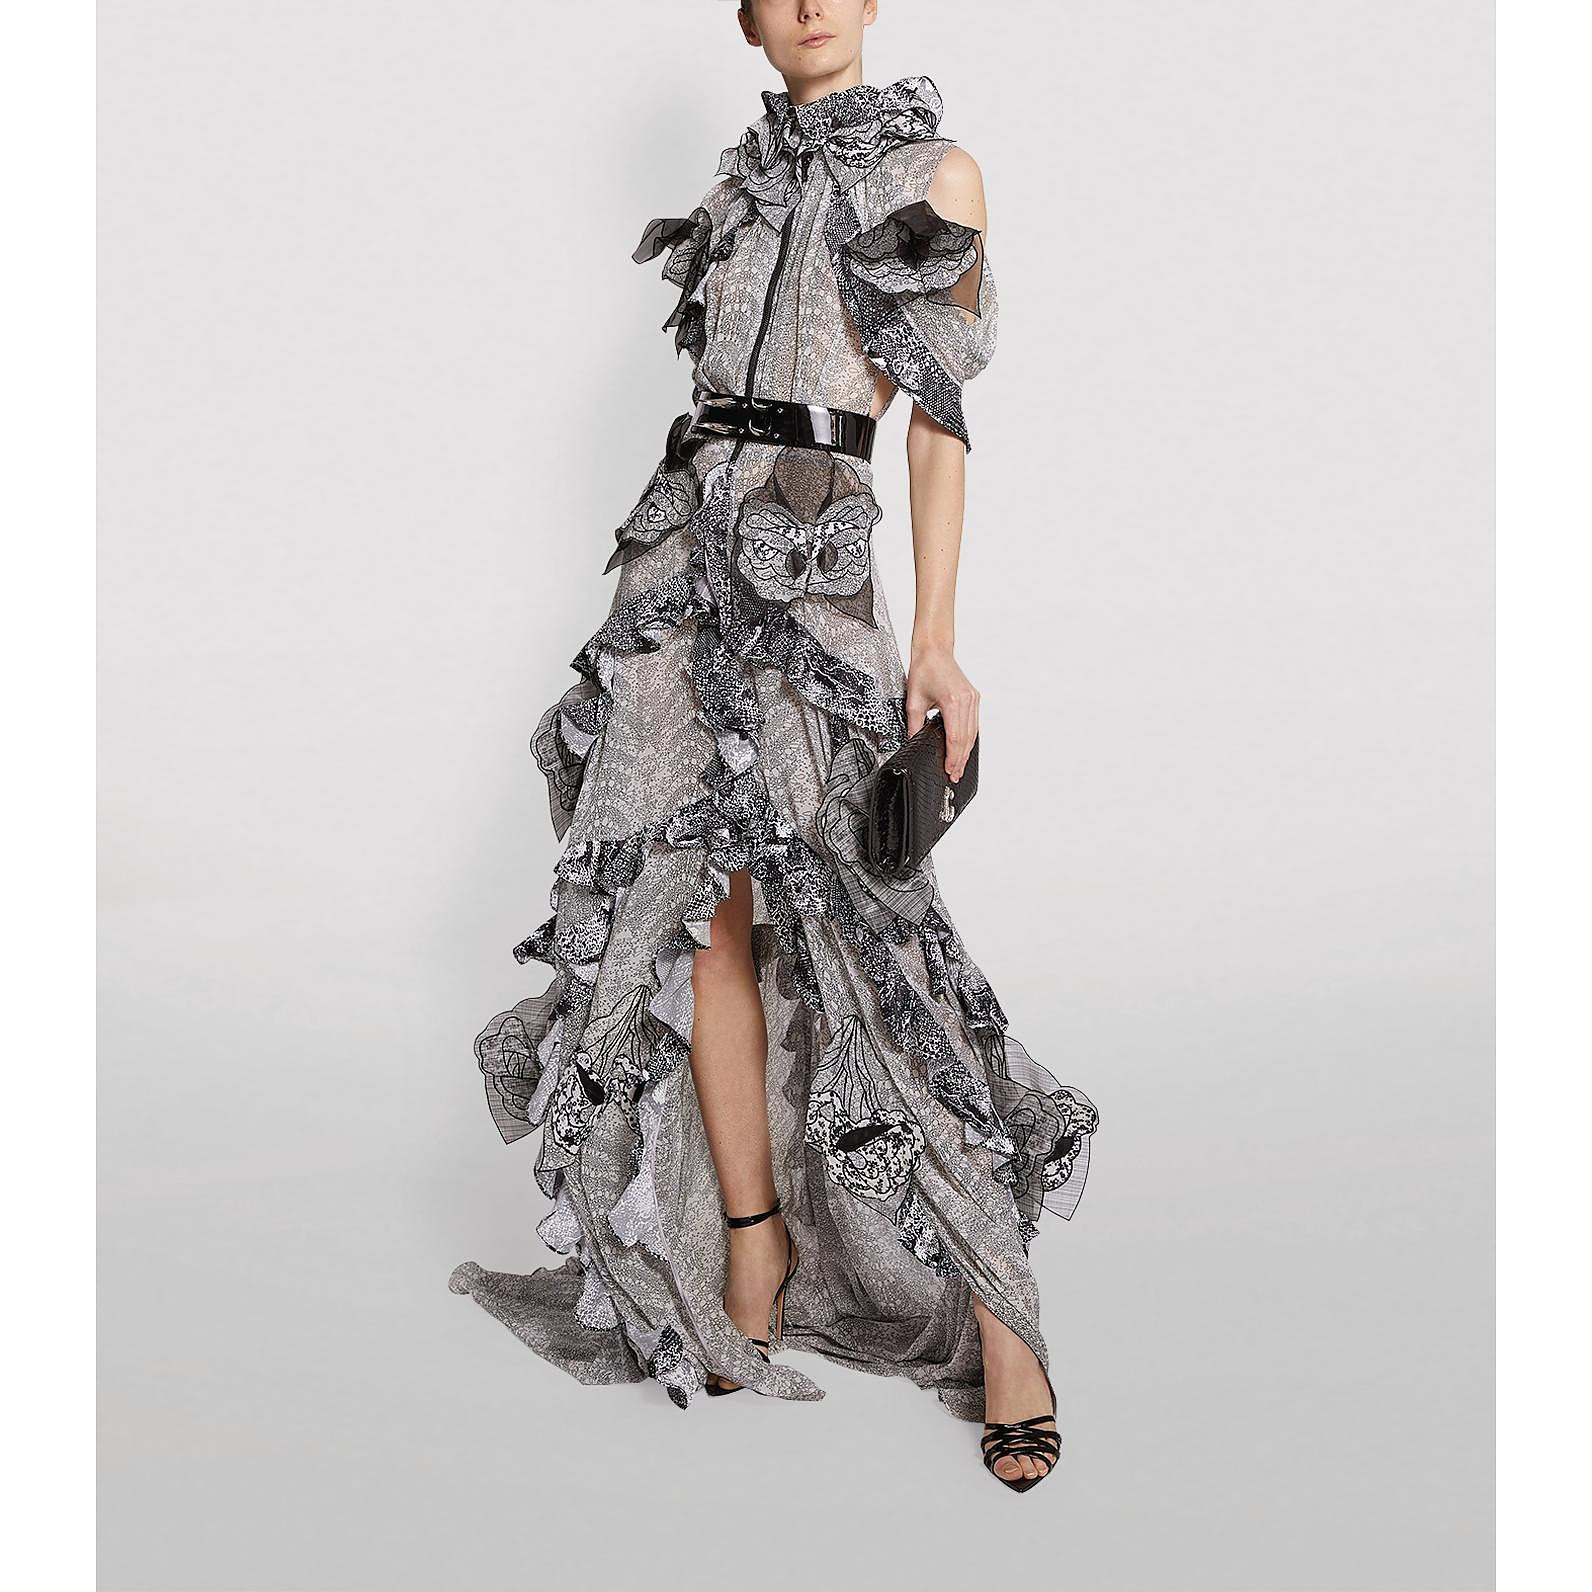 Maticevski Occurring Belted Gown